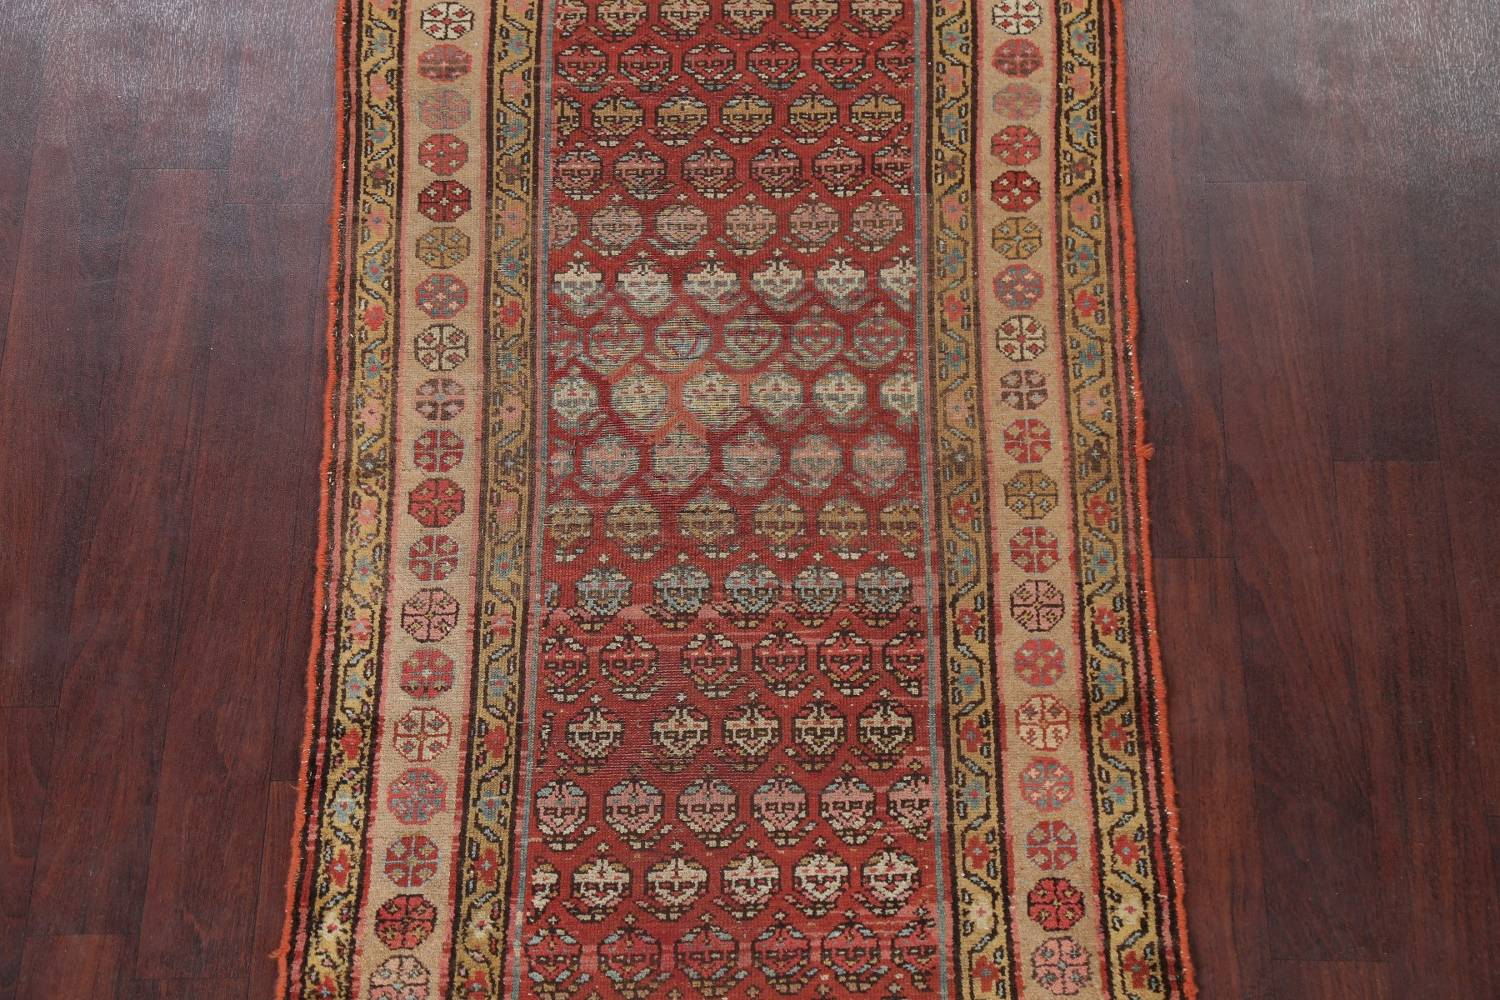 Pre-1900 Antique Vegetable Dye Malayer Persian Rug 3x8 image 3